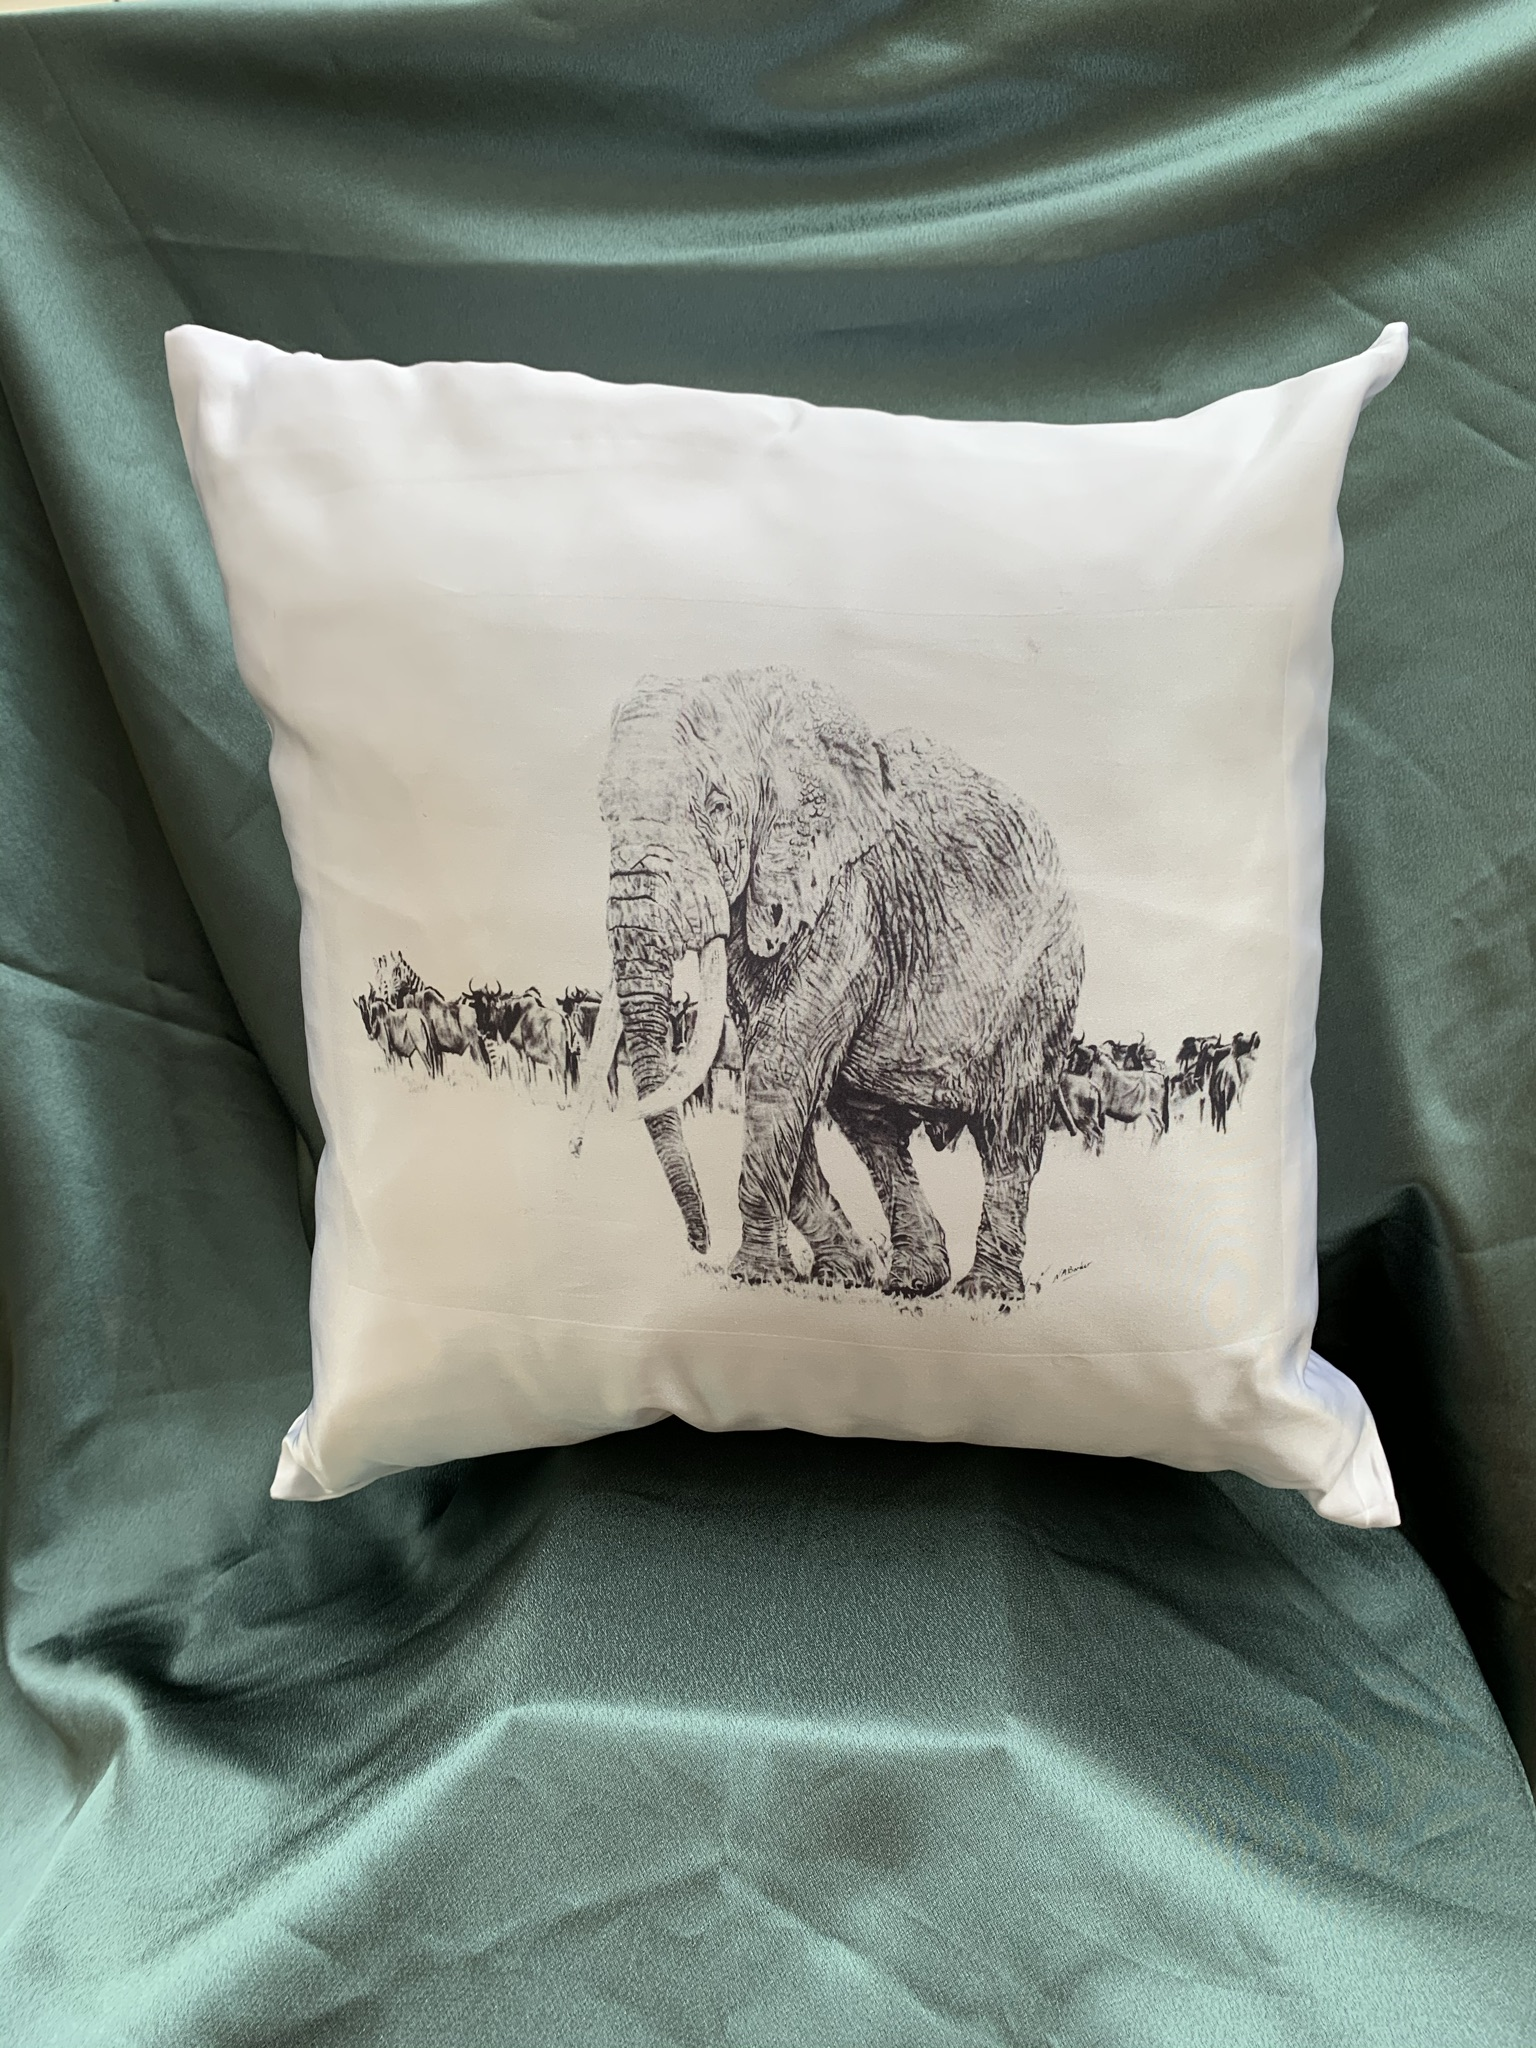 Cushion - Various Designs - Silky or Canvas Material - White or Pale Beige - £15